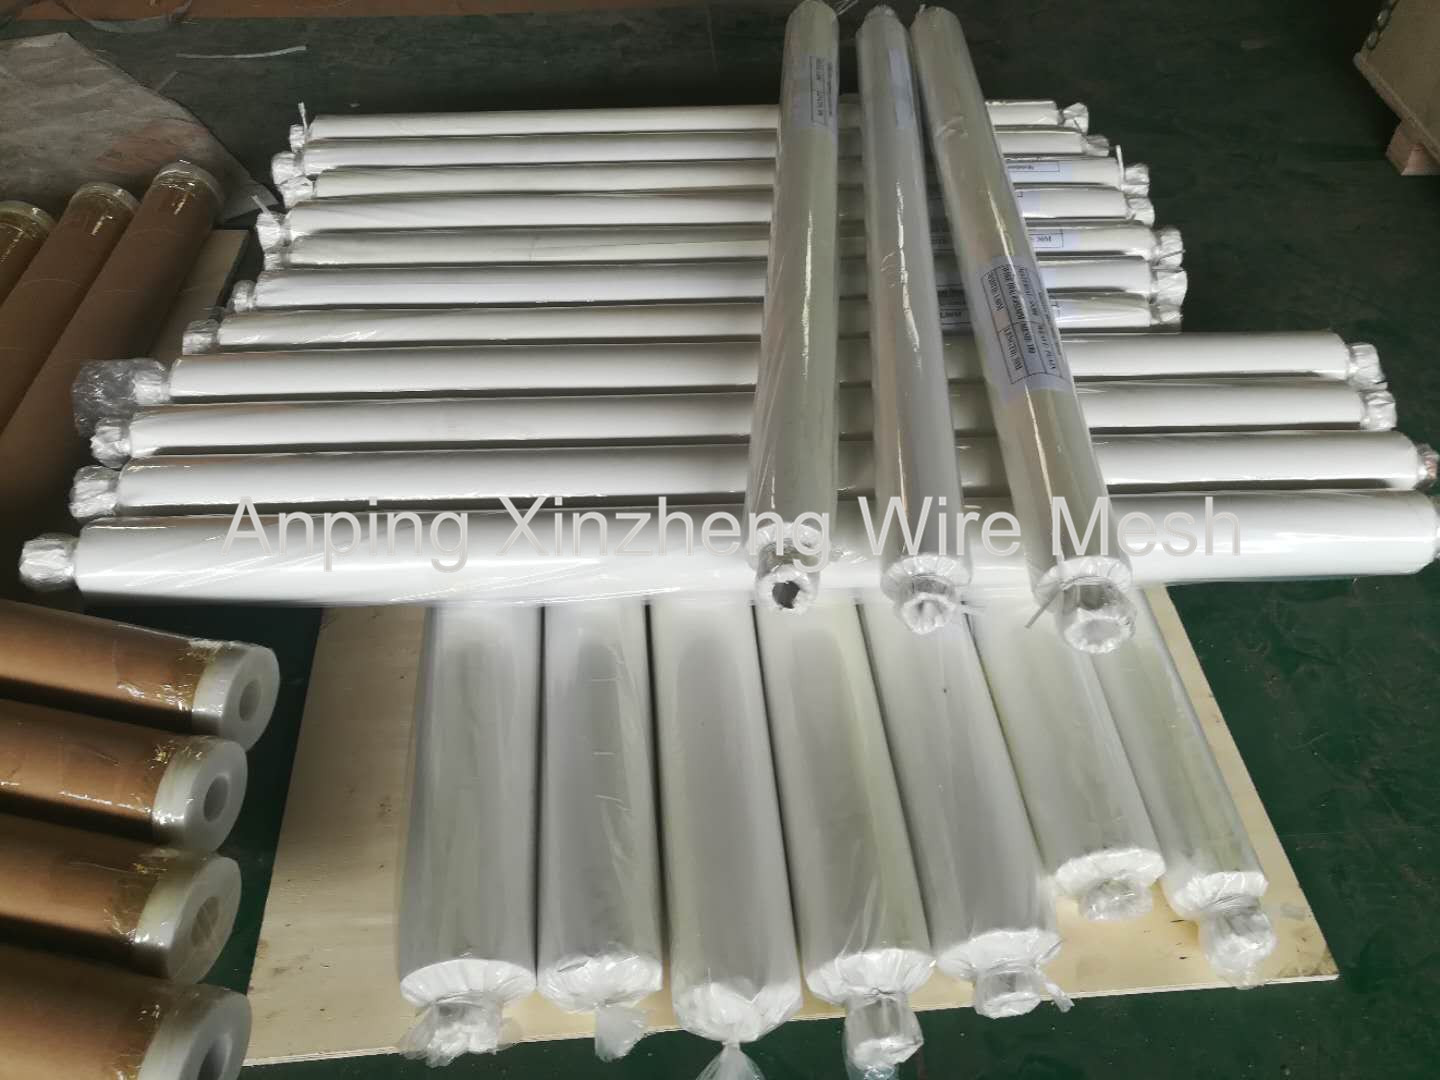 Dutch Weave Metal Mesh